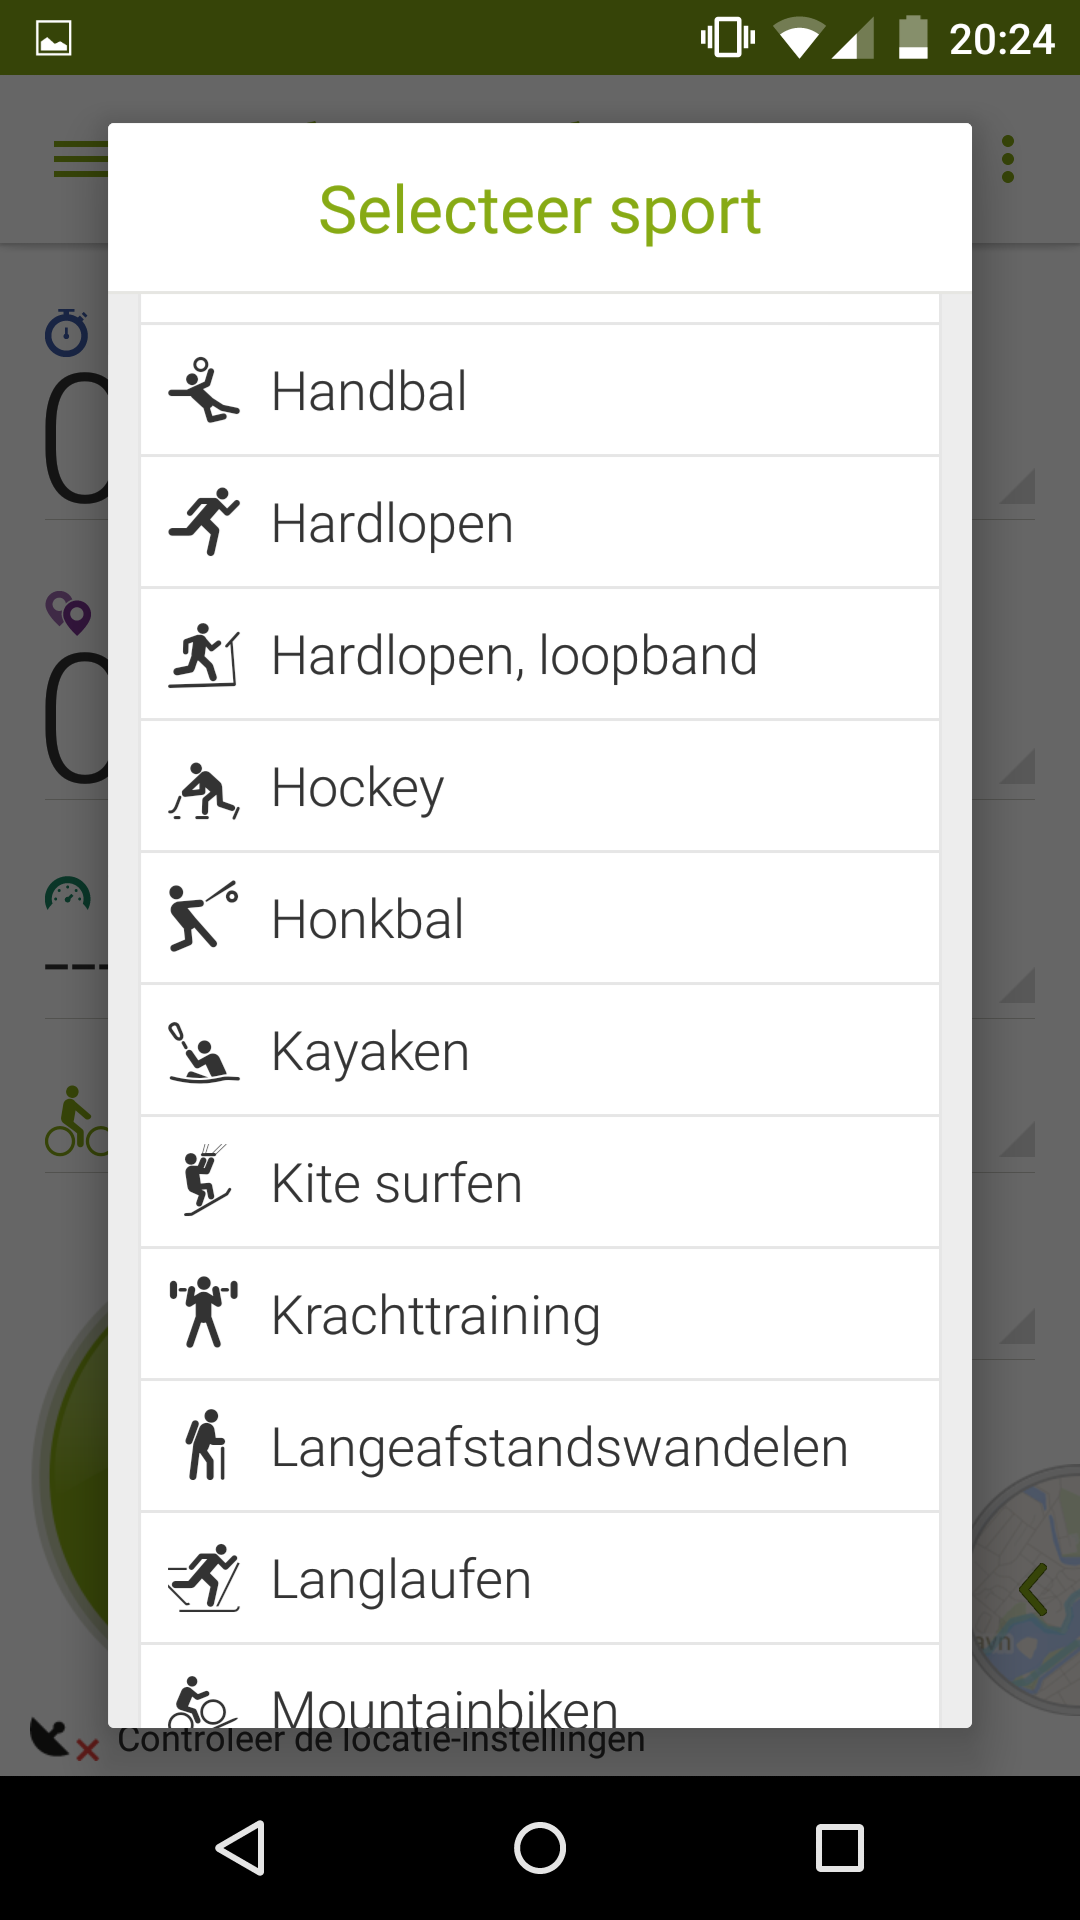 Endomondo - list of sports